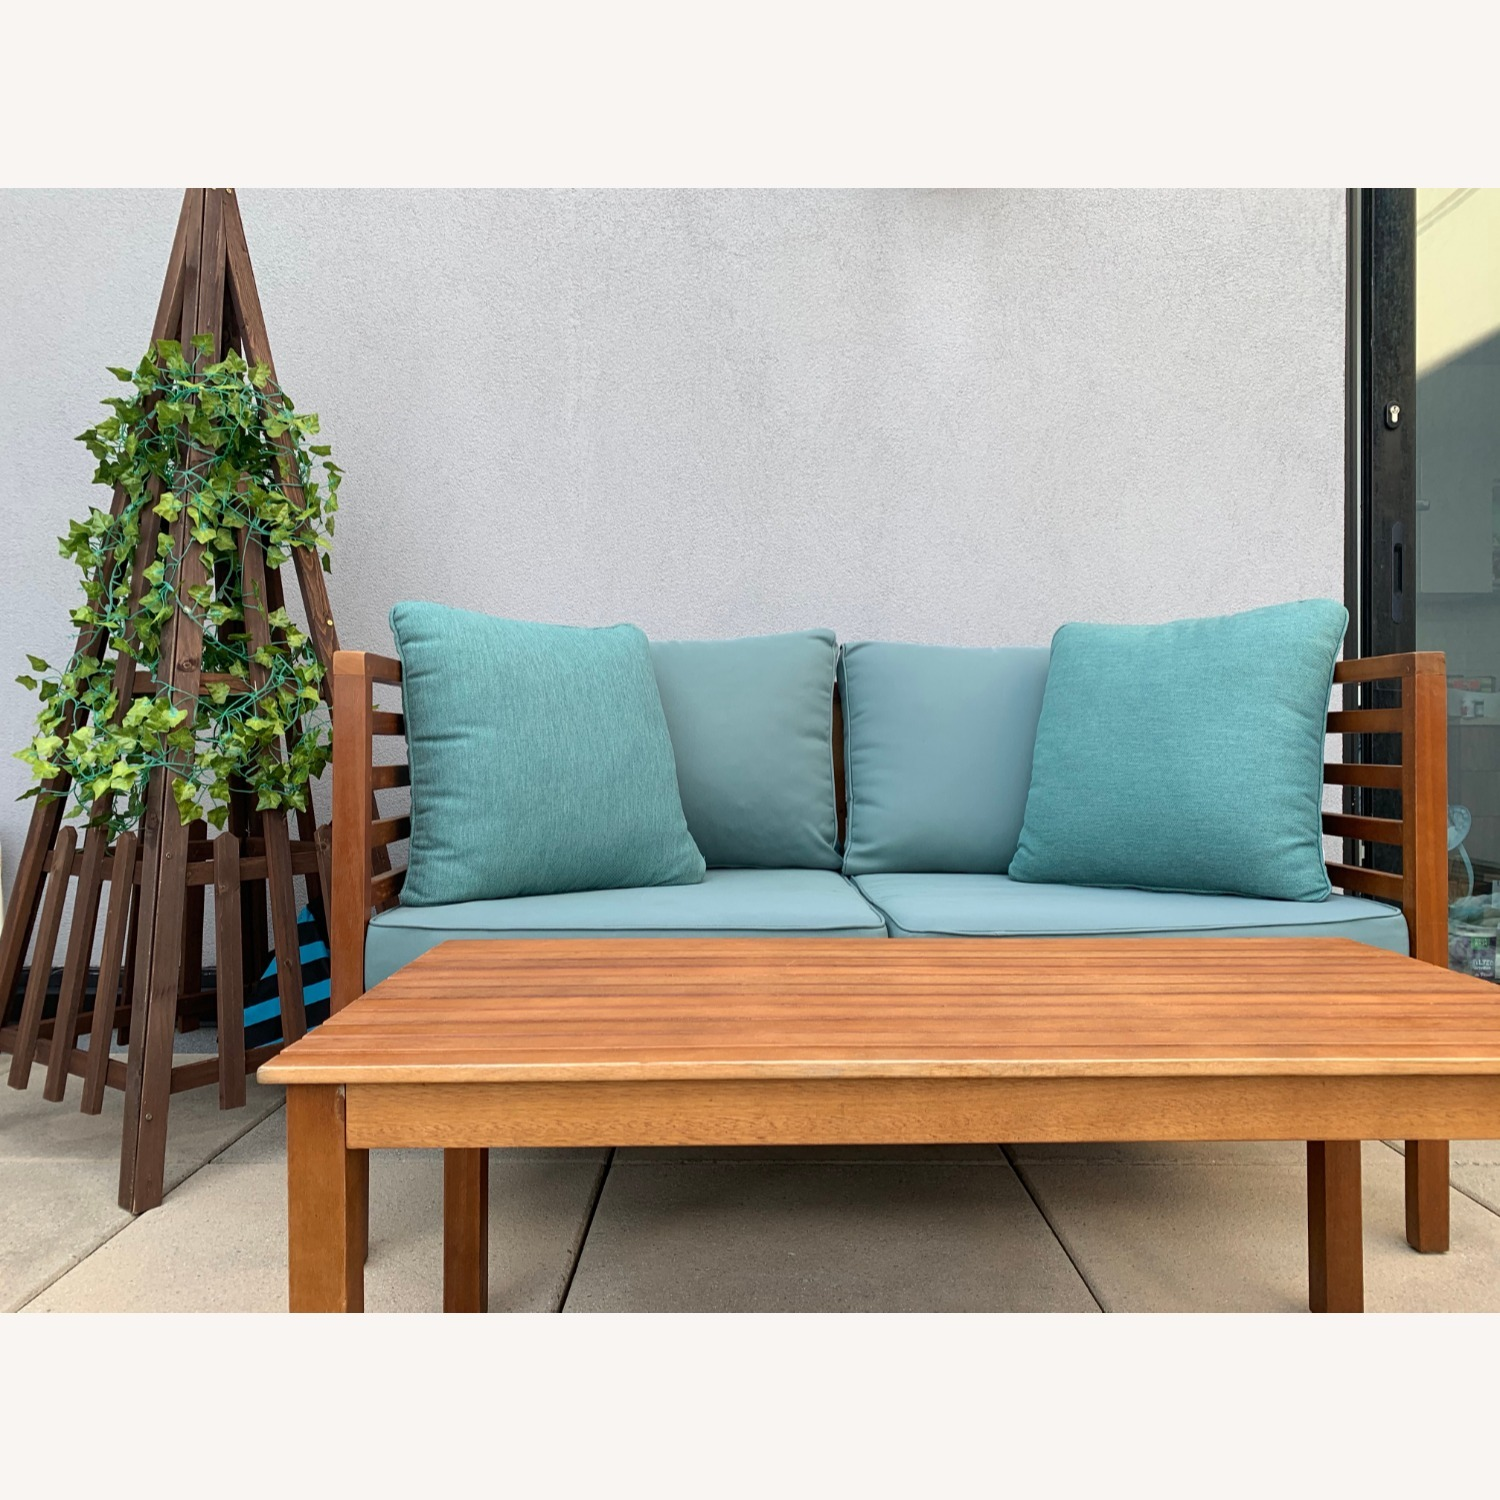 Patio Loveseat + Table + Obelisk With Faux Ivy - image-2